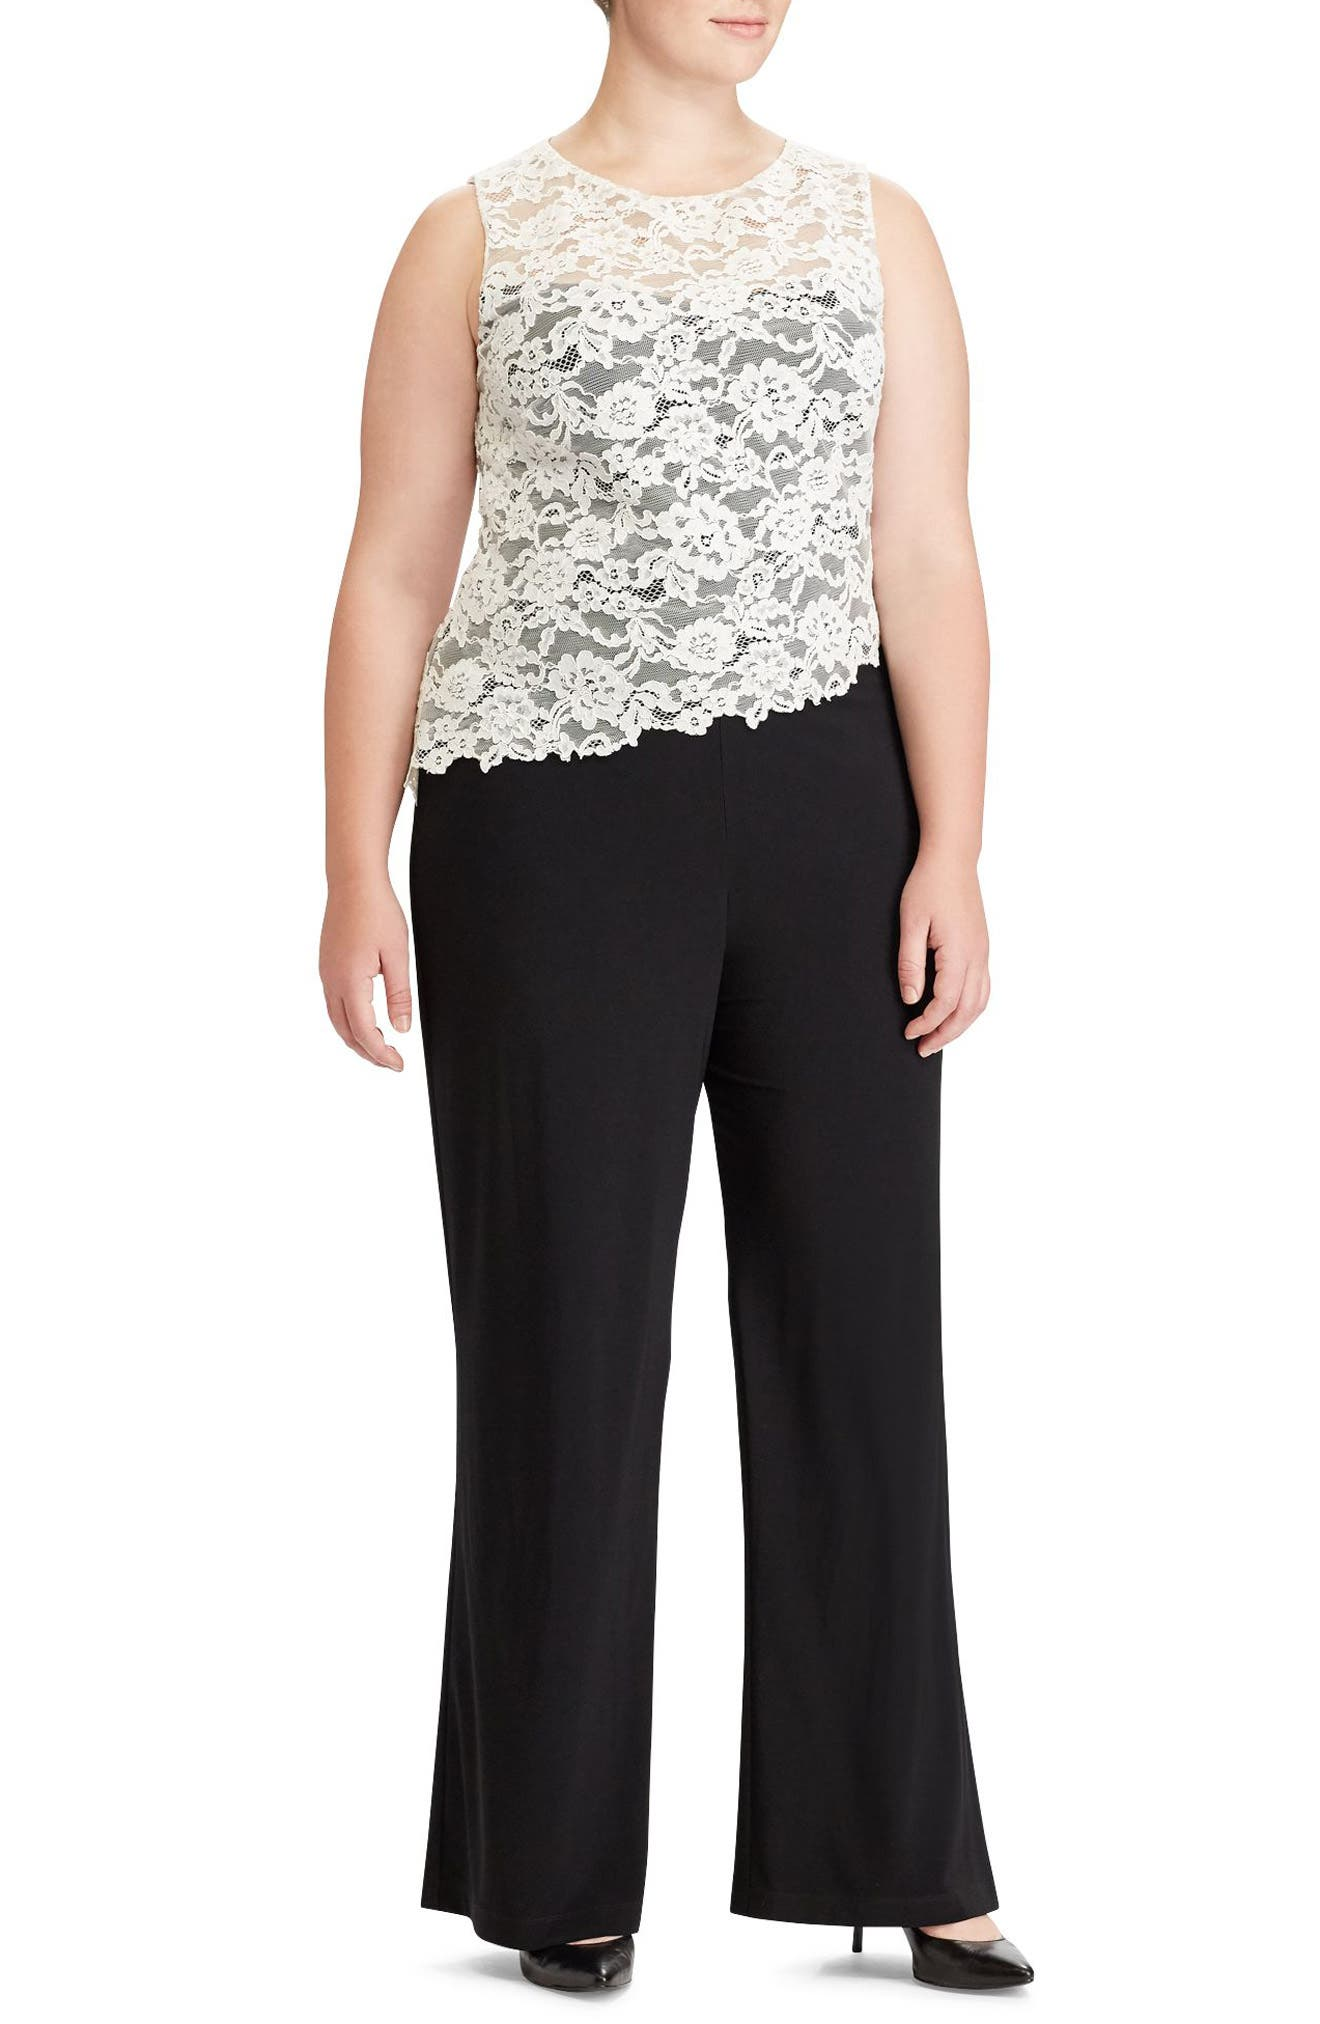 Zakiya Lacy Jumpsuit,                             Main thumbnail 1, color,                             Black/ Lauren White/ Wheat